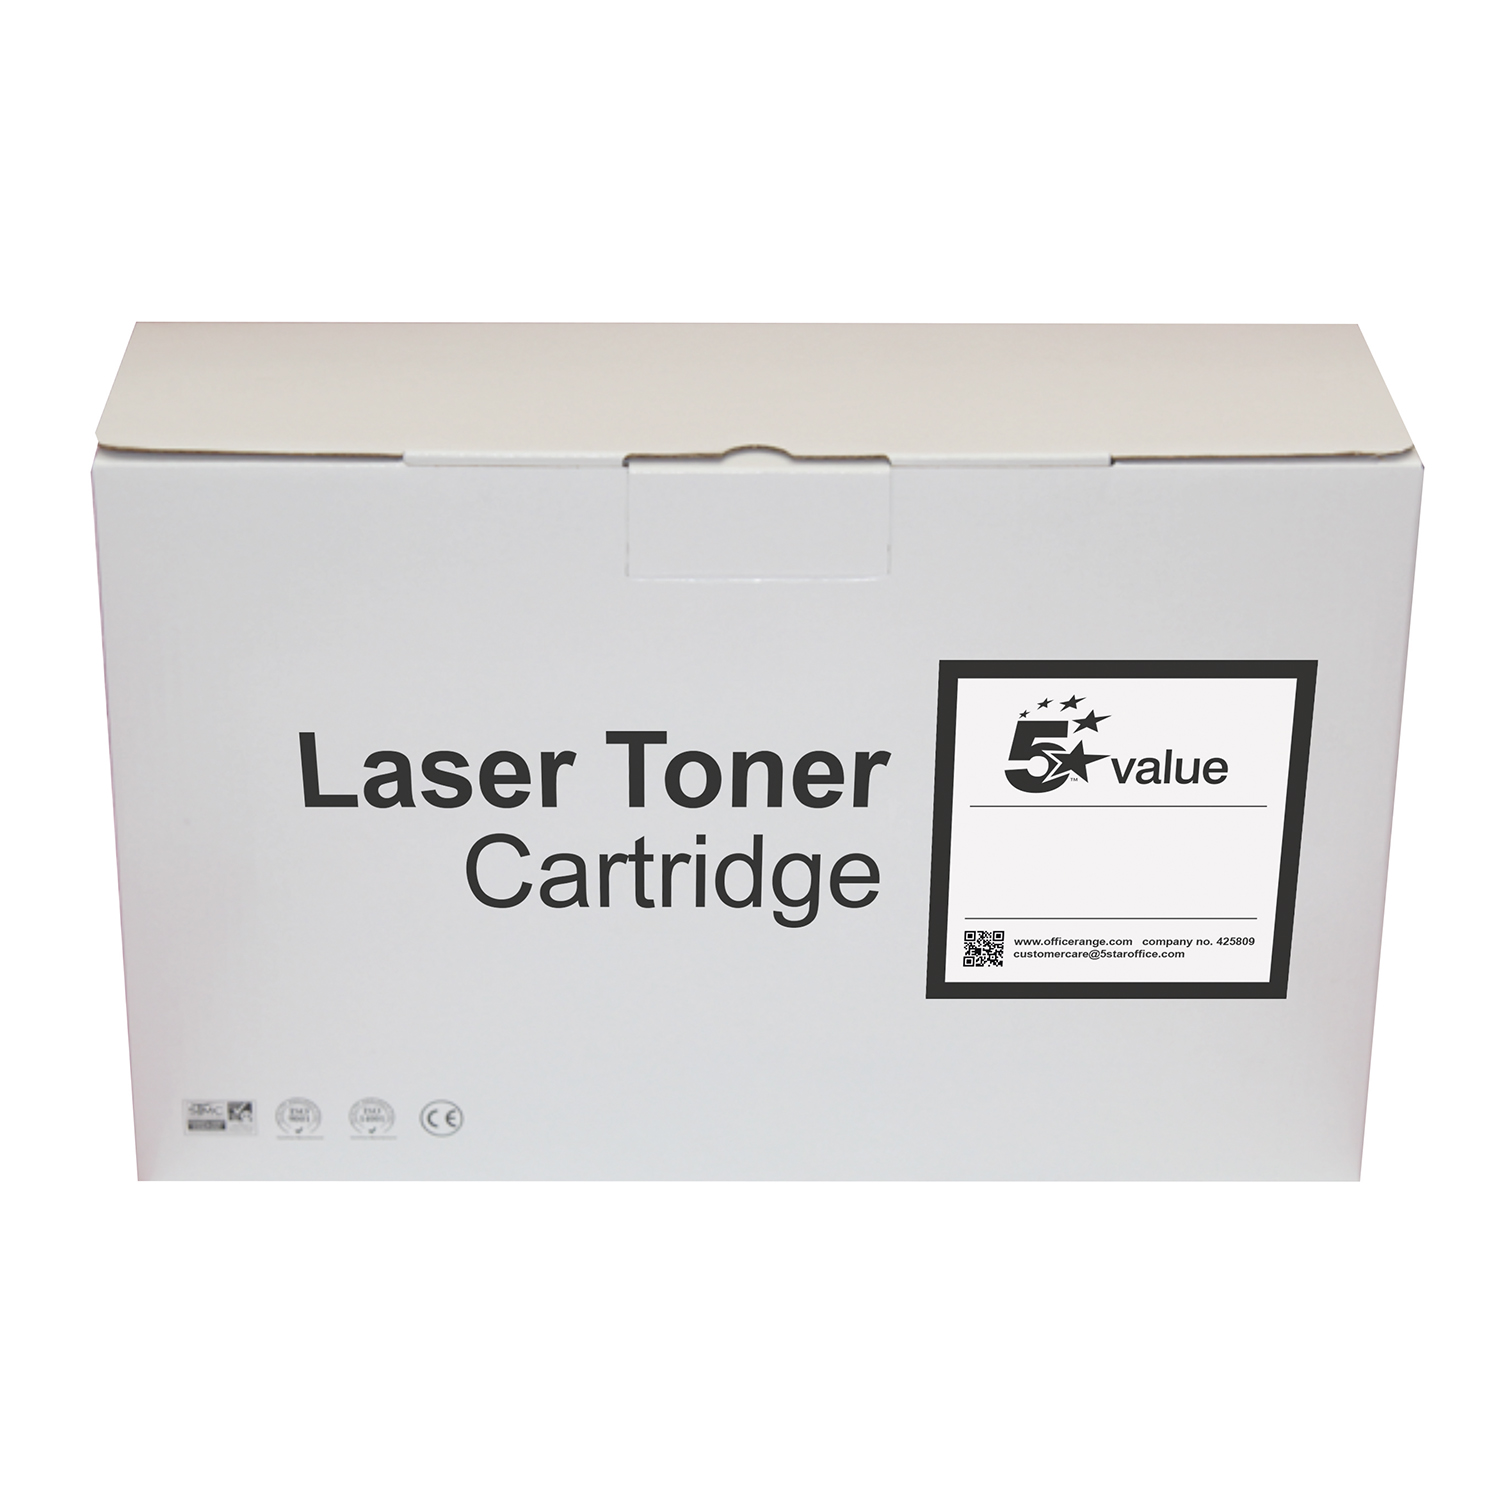 5 Star Value HP CF226X Toner Cartridge Black